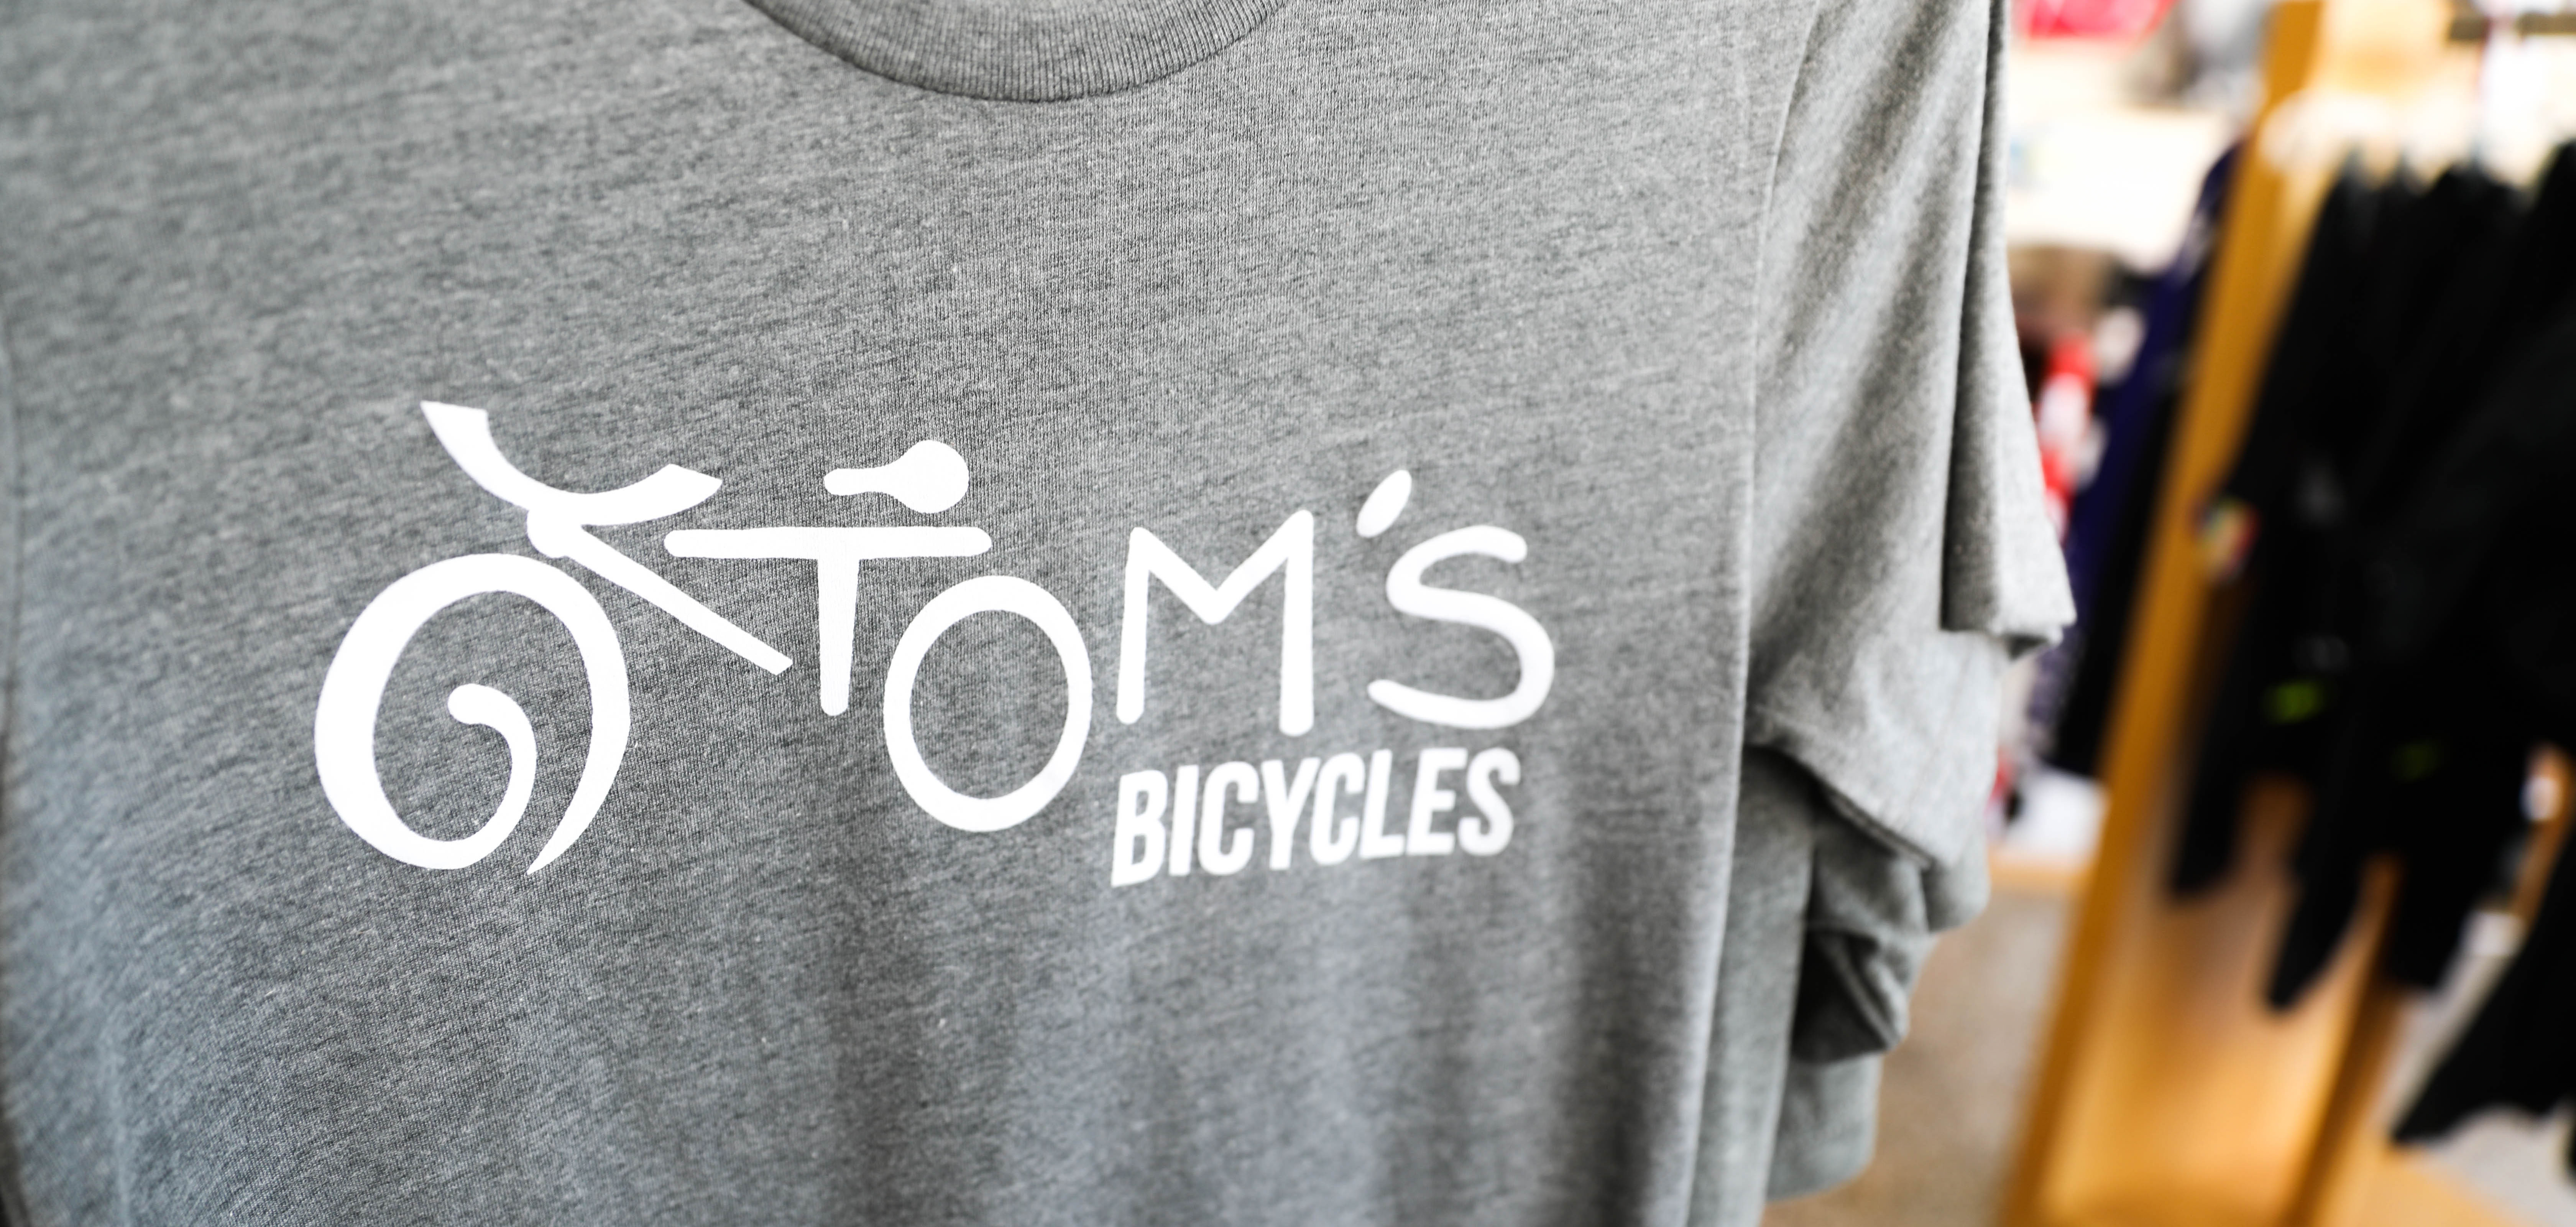 A t-shirt at Tom's Bicycles with the Tom's Bicycles logo on Tulsa's Root 66.